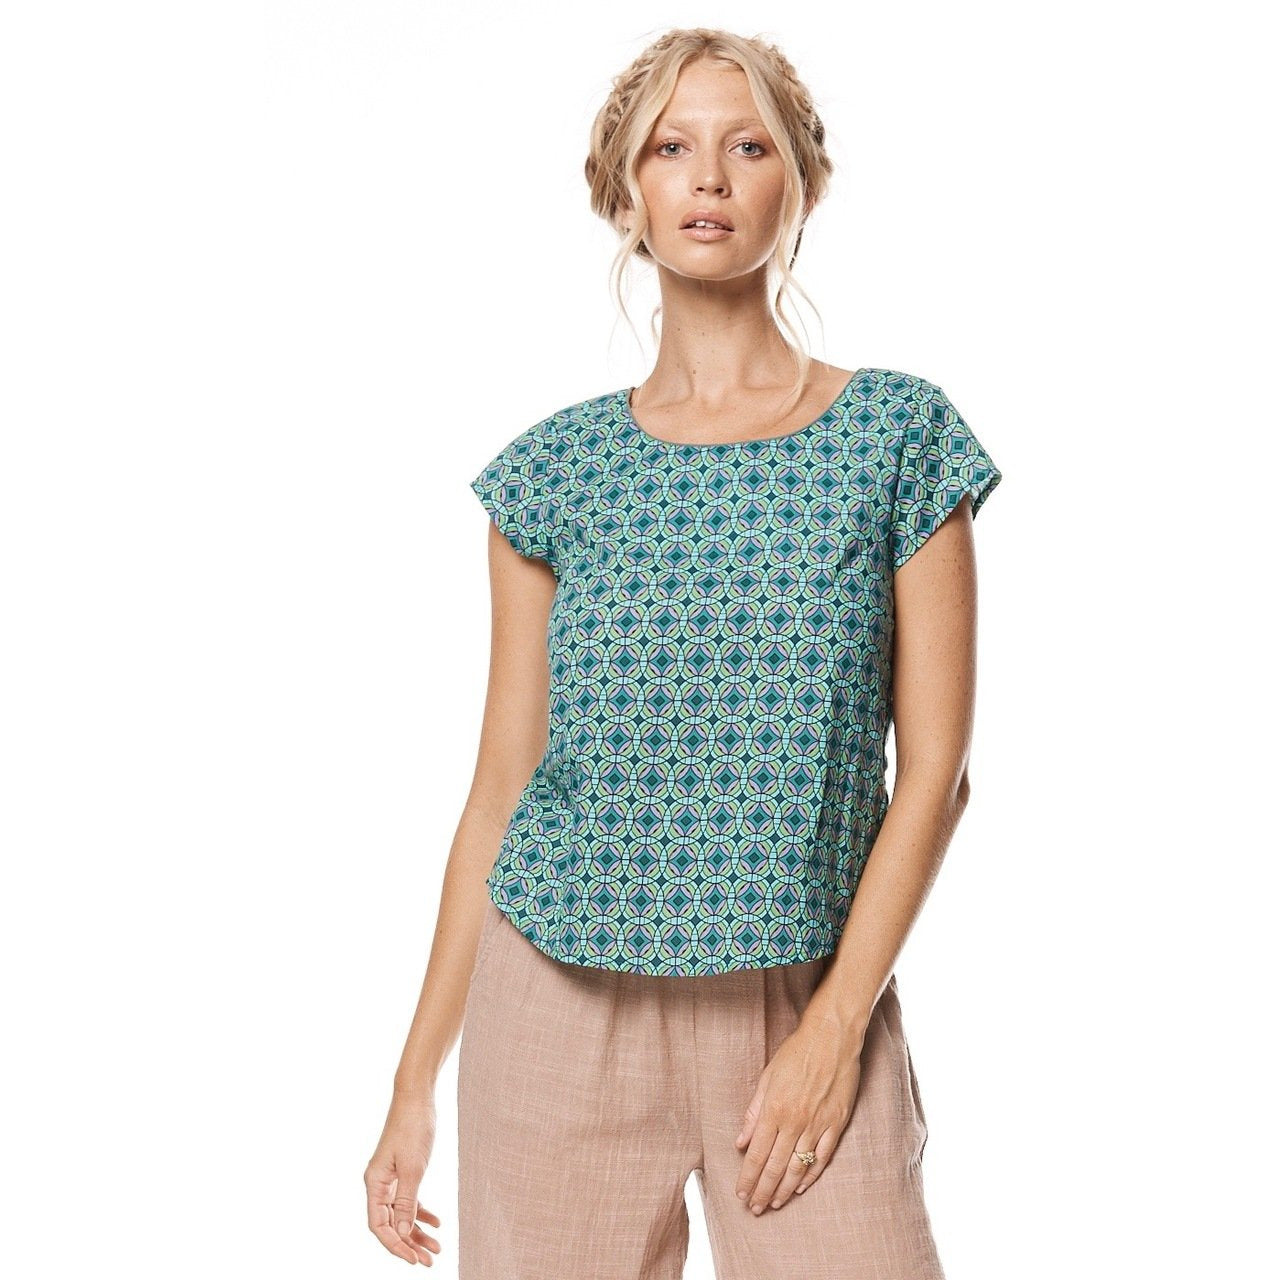 MahaShe Remi Top in Kaleido Teal